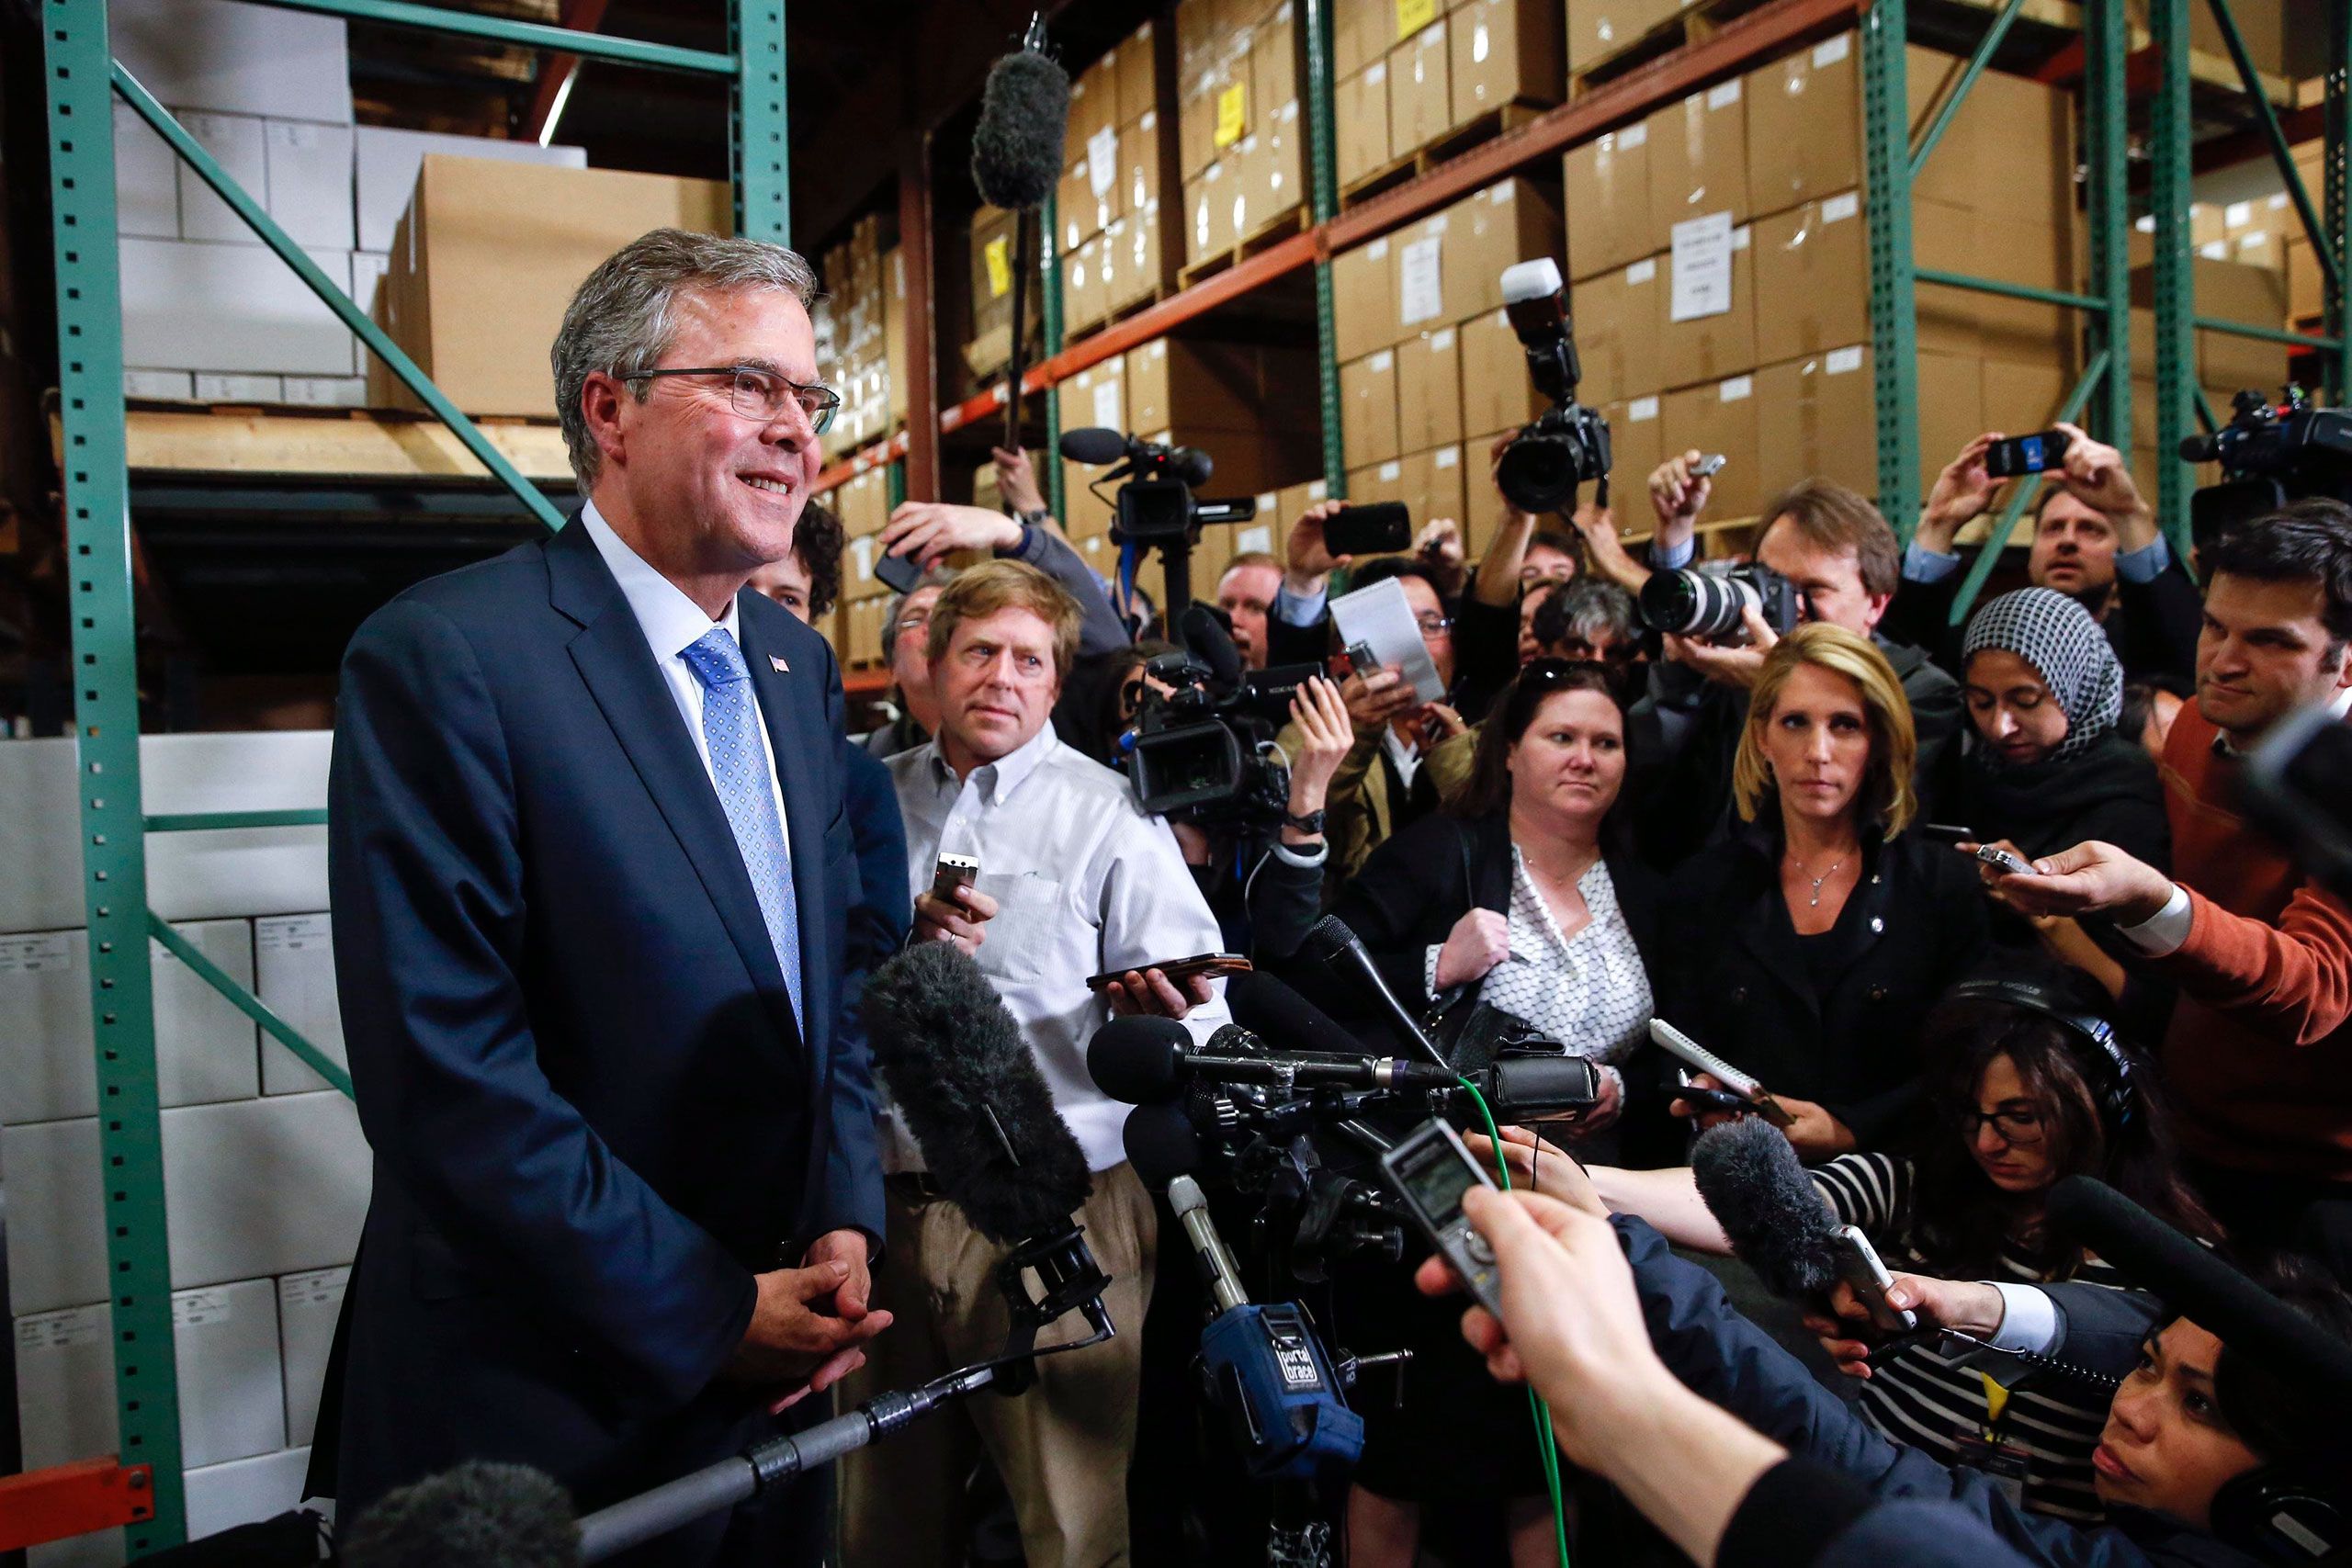 Former Florida Governor Jeb Bush speaks to the media after visiting Integra Biosciences during a campaign stop in Hudson, New Hampshire March 13, 2015.